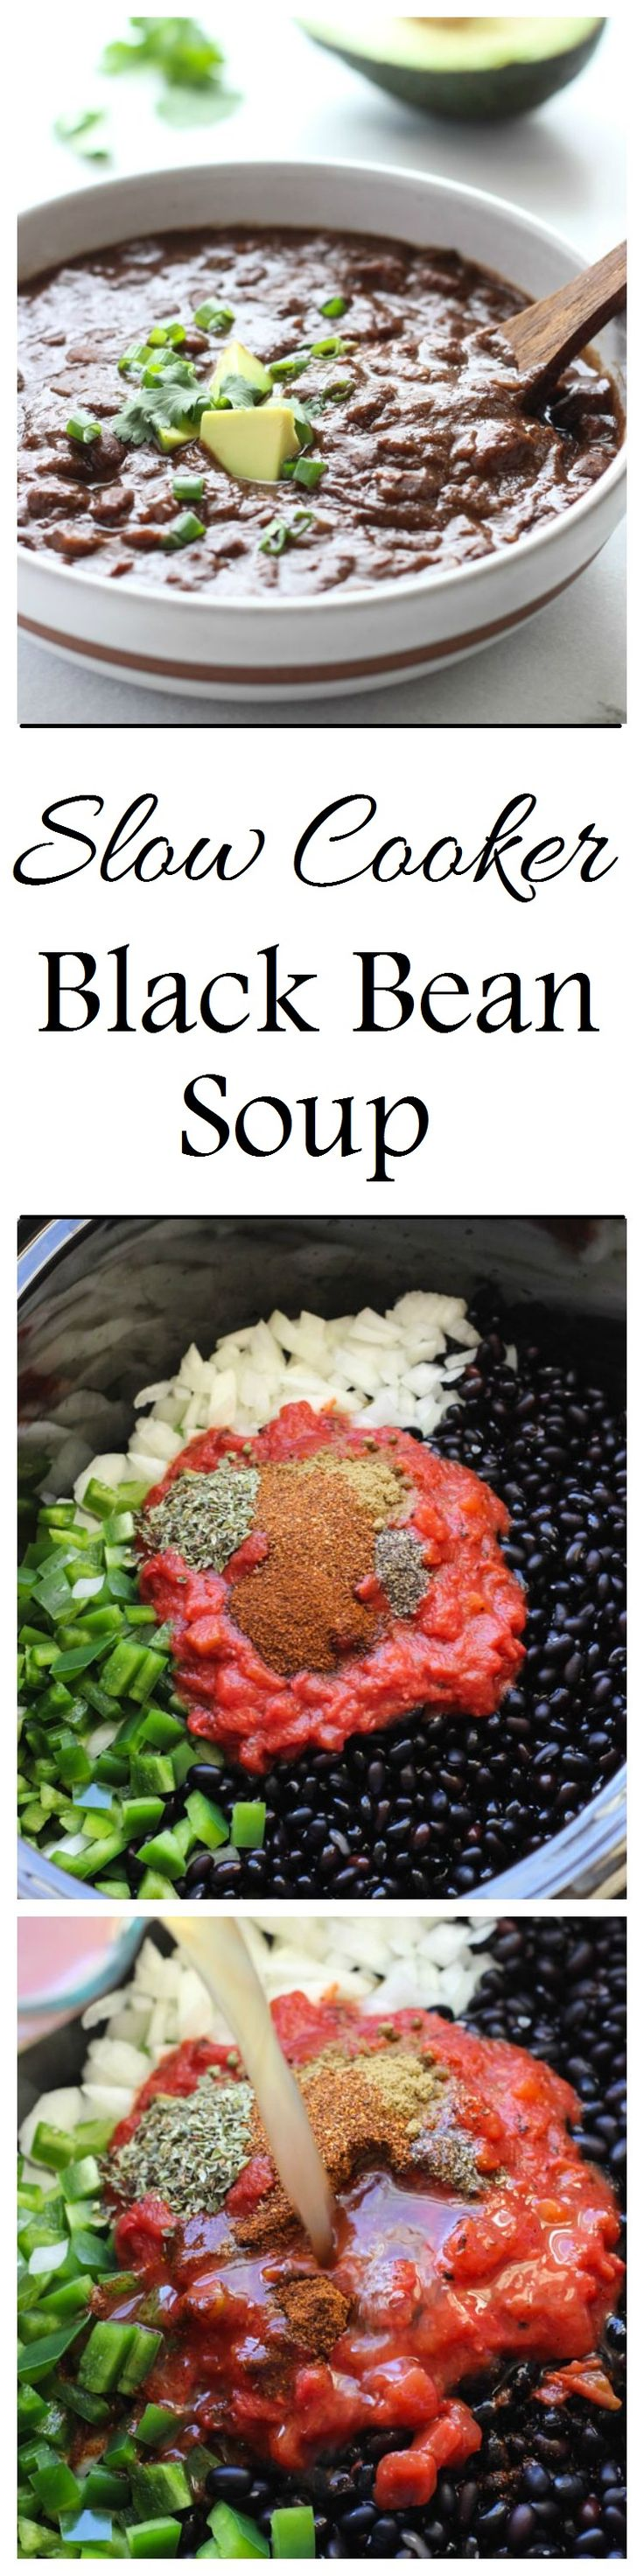 TRIED-Easy Slow Cooker Black Bean Soup- throw everything in your slow cooker and come home to a warm and healthy meal! (vegan + gluten-free)